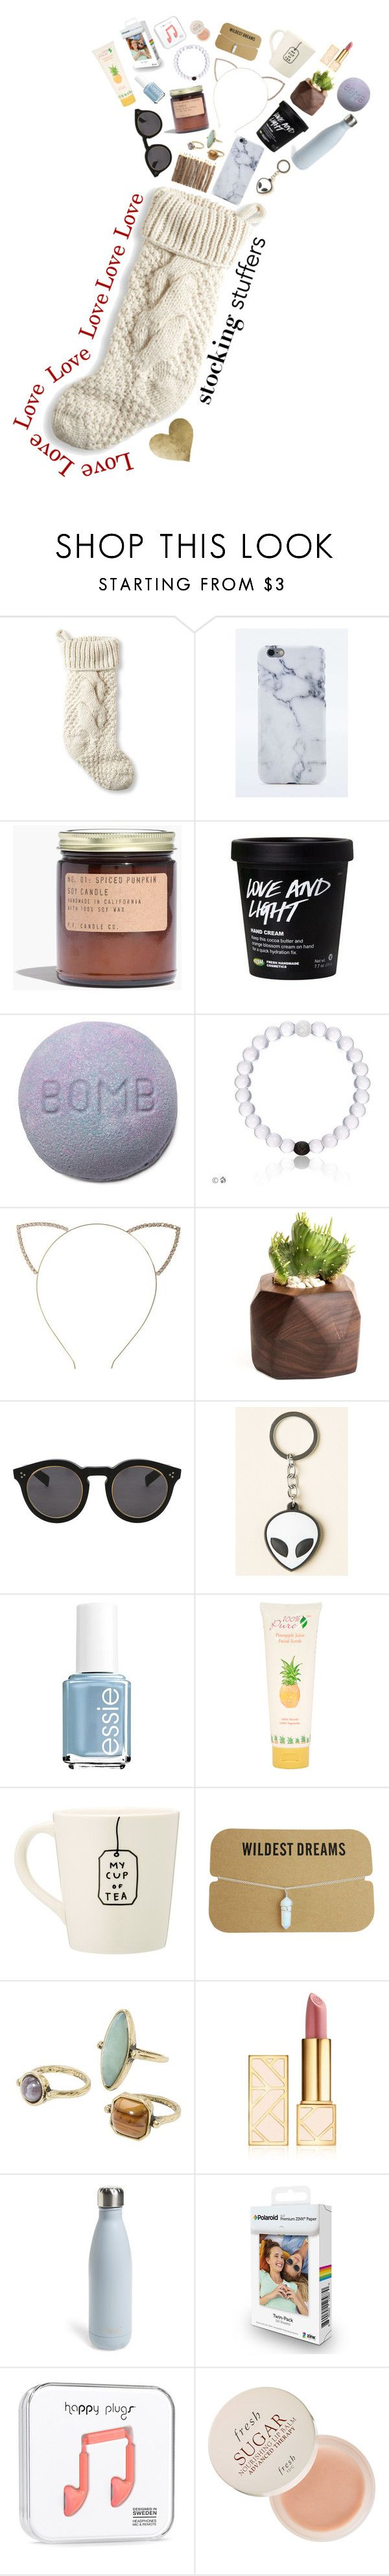 HOLIDAY GIFT GUIDE Gifts for Teen Girls